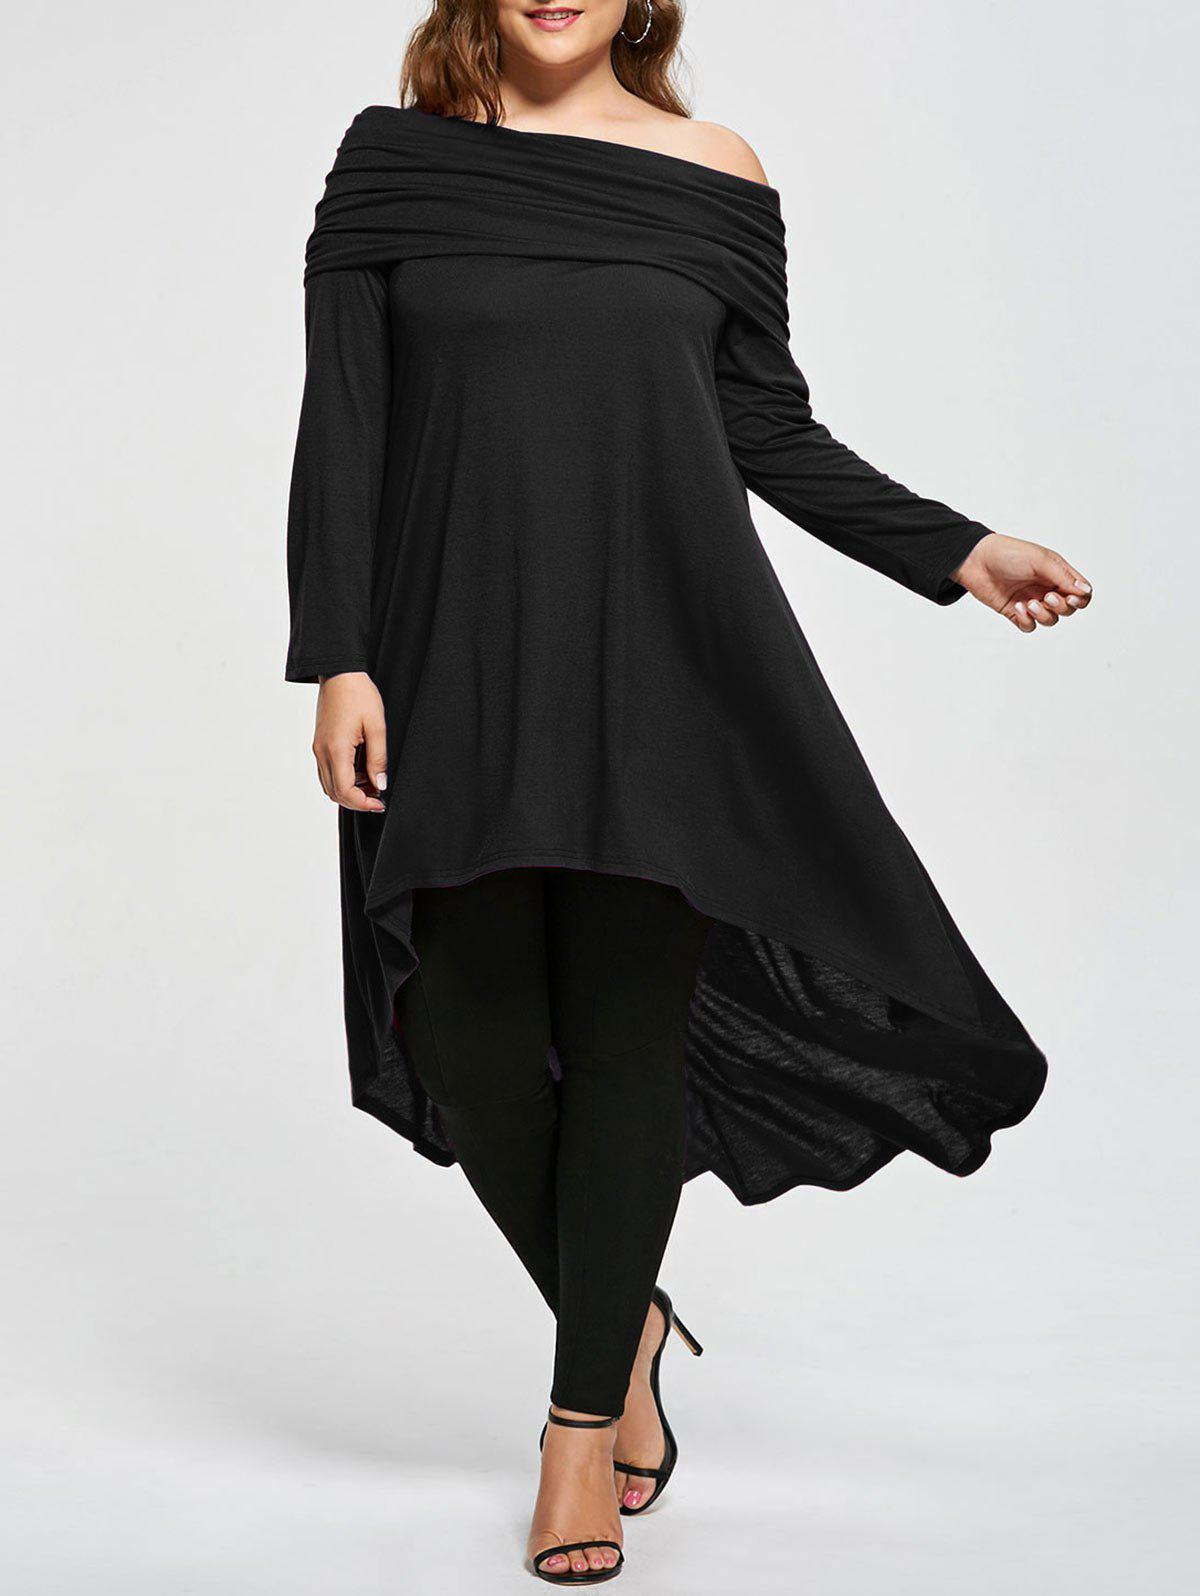 Plus Size Skew Neck Asymmetric Longline TopWOMEN<br><br>Size: 4XL; Color: BLACK; Material: Cotton,Polyester; Shirt Length: Long; Sleeve Length: Full; Collar: Skew Collar; Style: Casual; Season: Fall,Spring; Pattern Type: Solid; Weight: 0.5000kg; Package Contents: 1 x T-shirt;